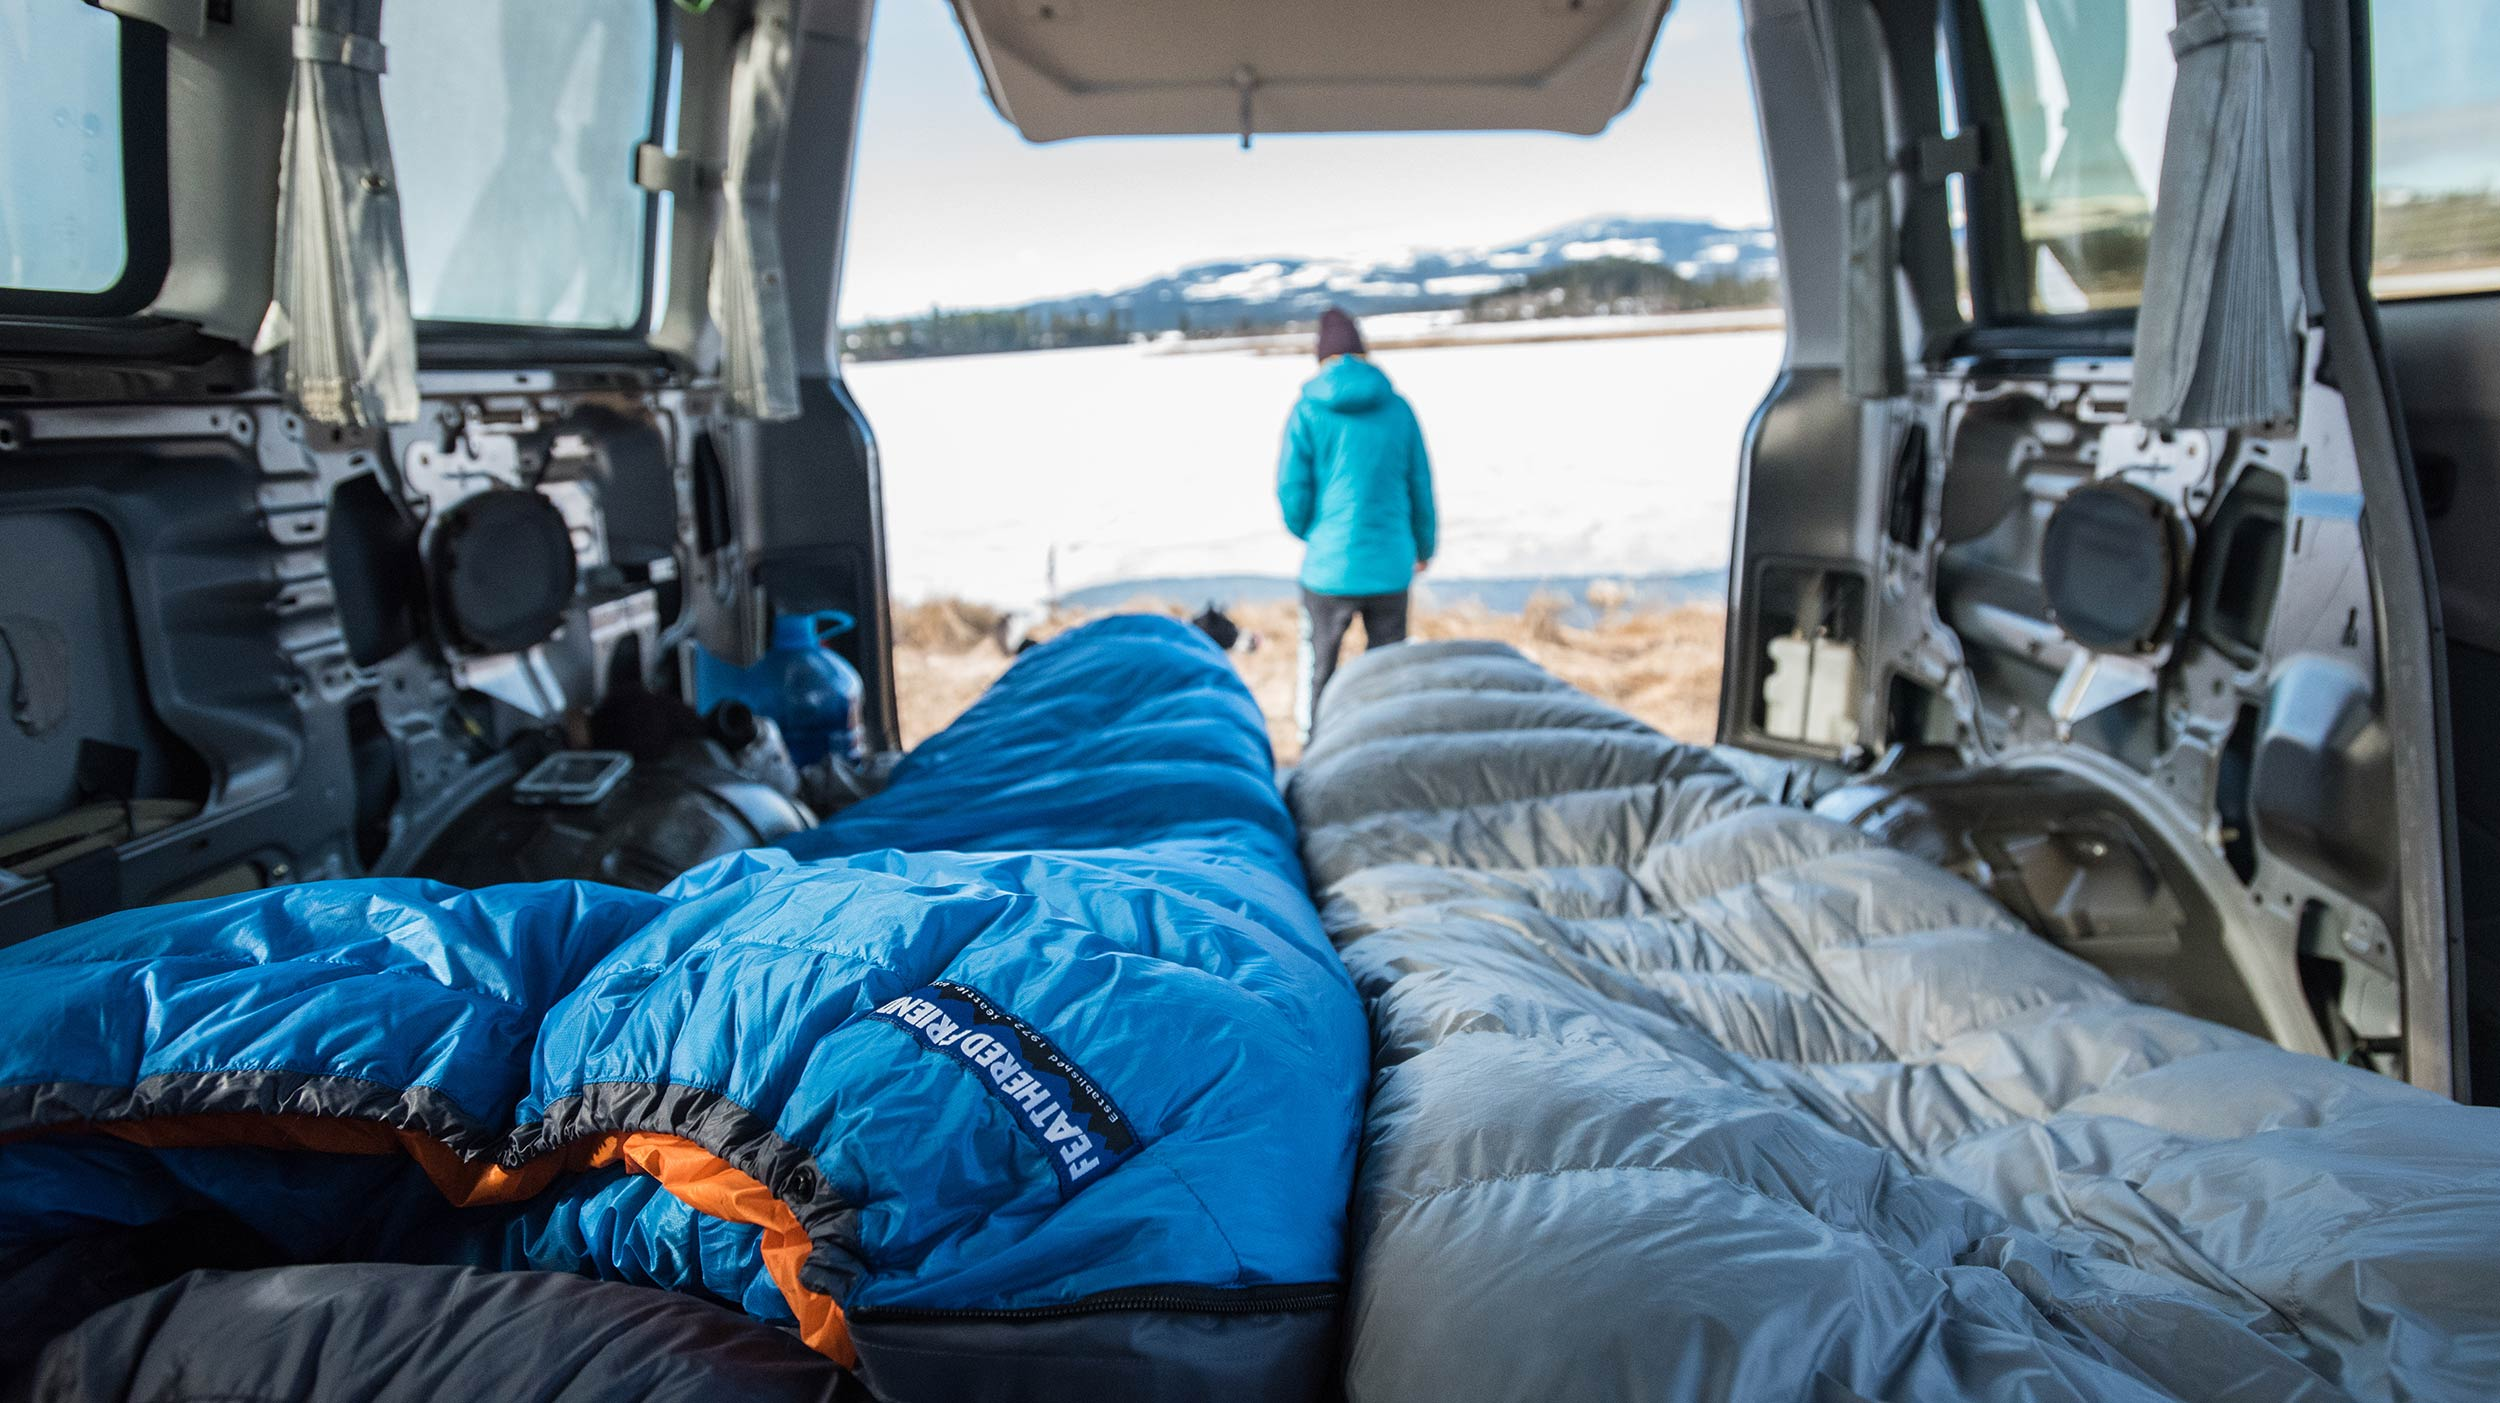 leighton_lakes_kamloops_van_feathered_friends_sleeping_bags.jpg